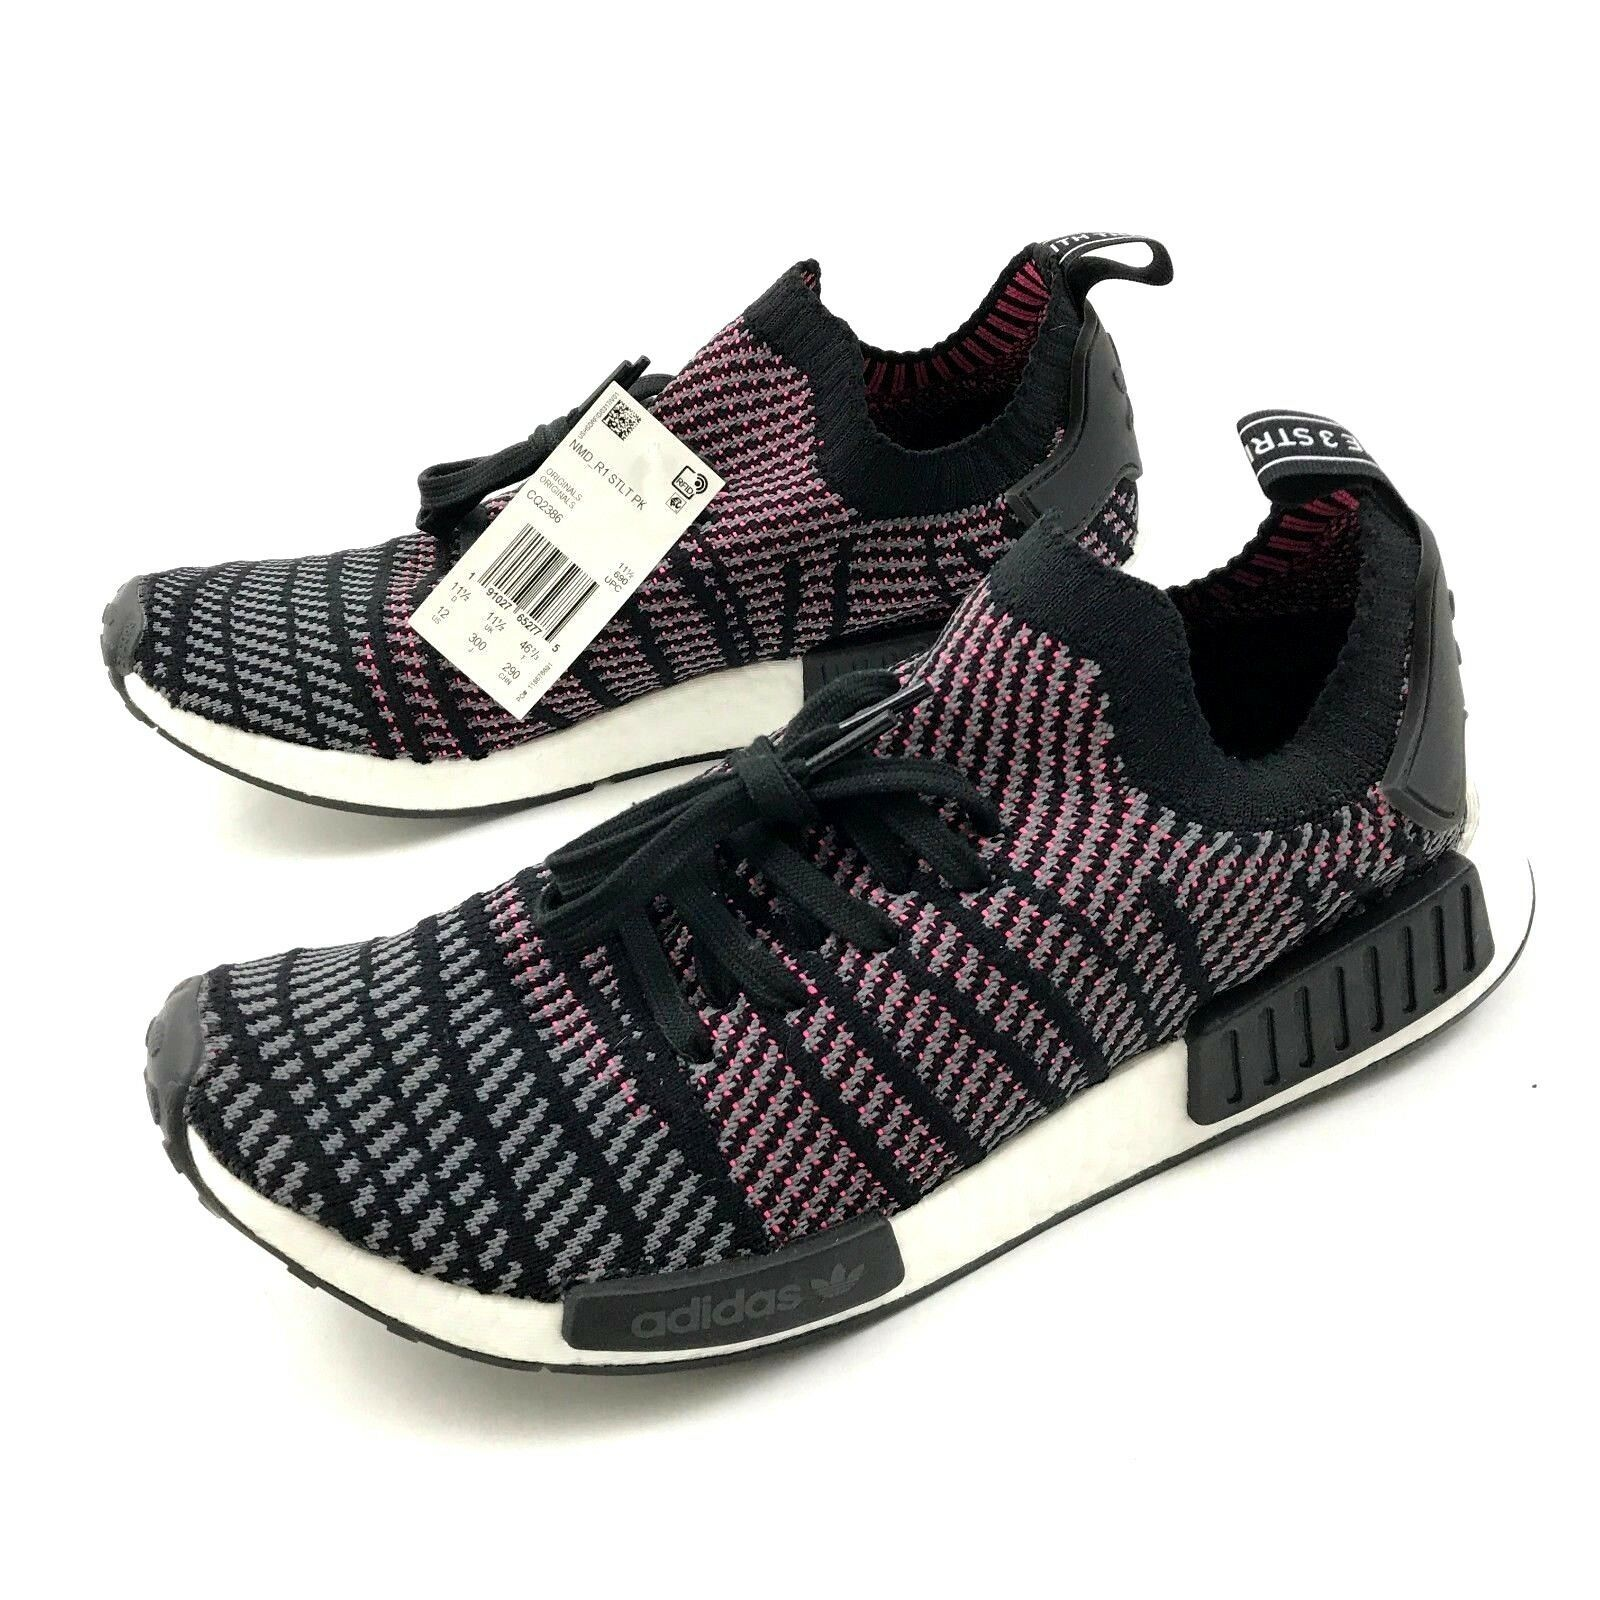 21d80df7e Adidas BOOST NMD R1 Shoes Mens Size 12 Low and 50 similar items. 57